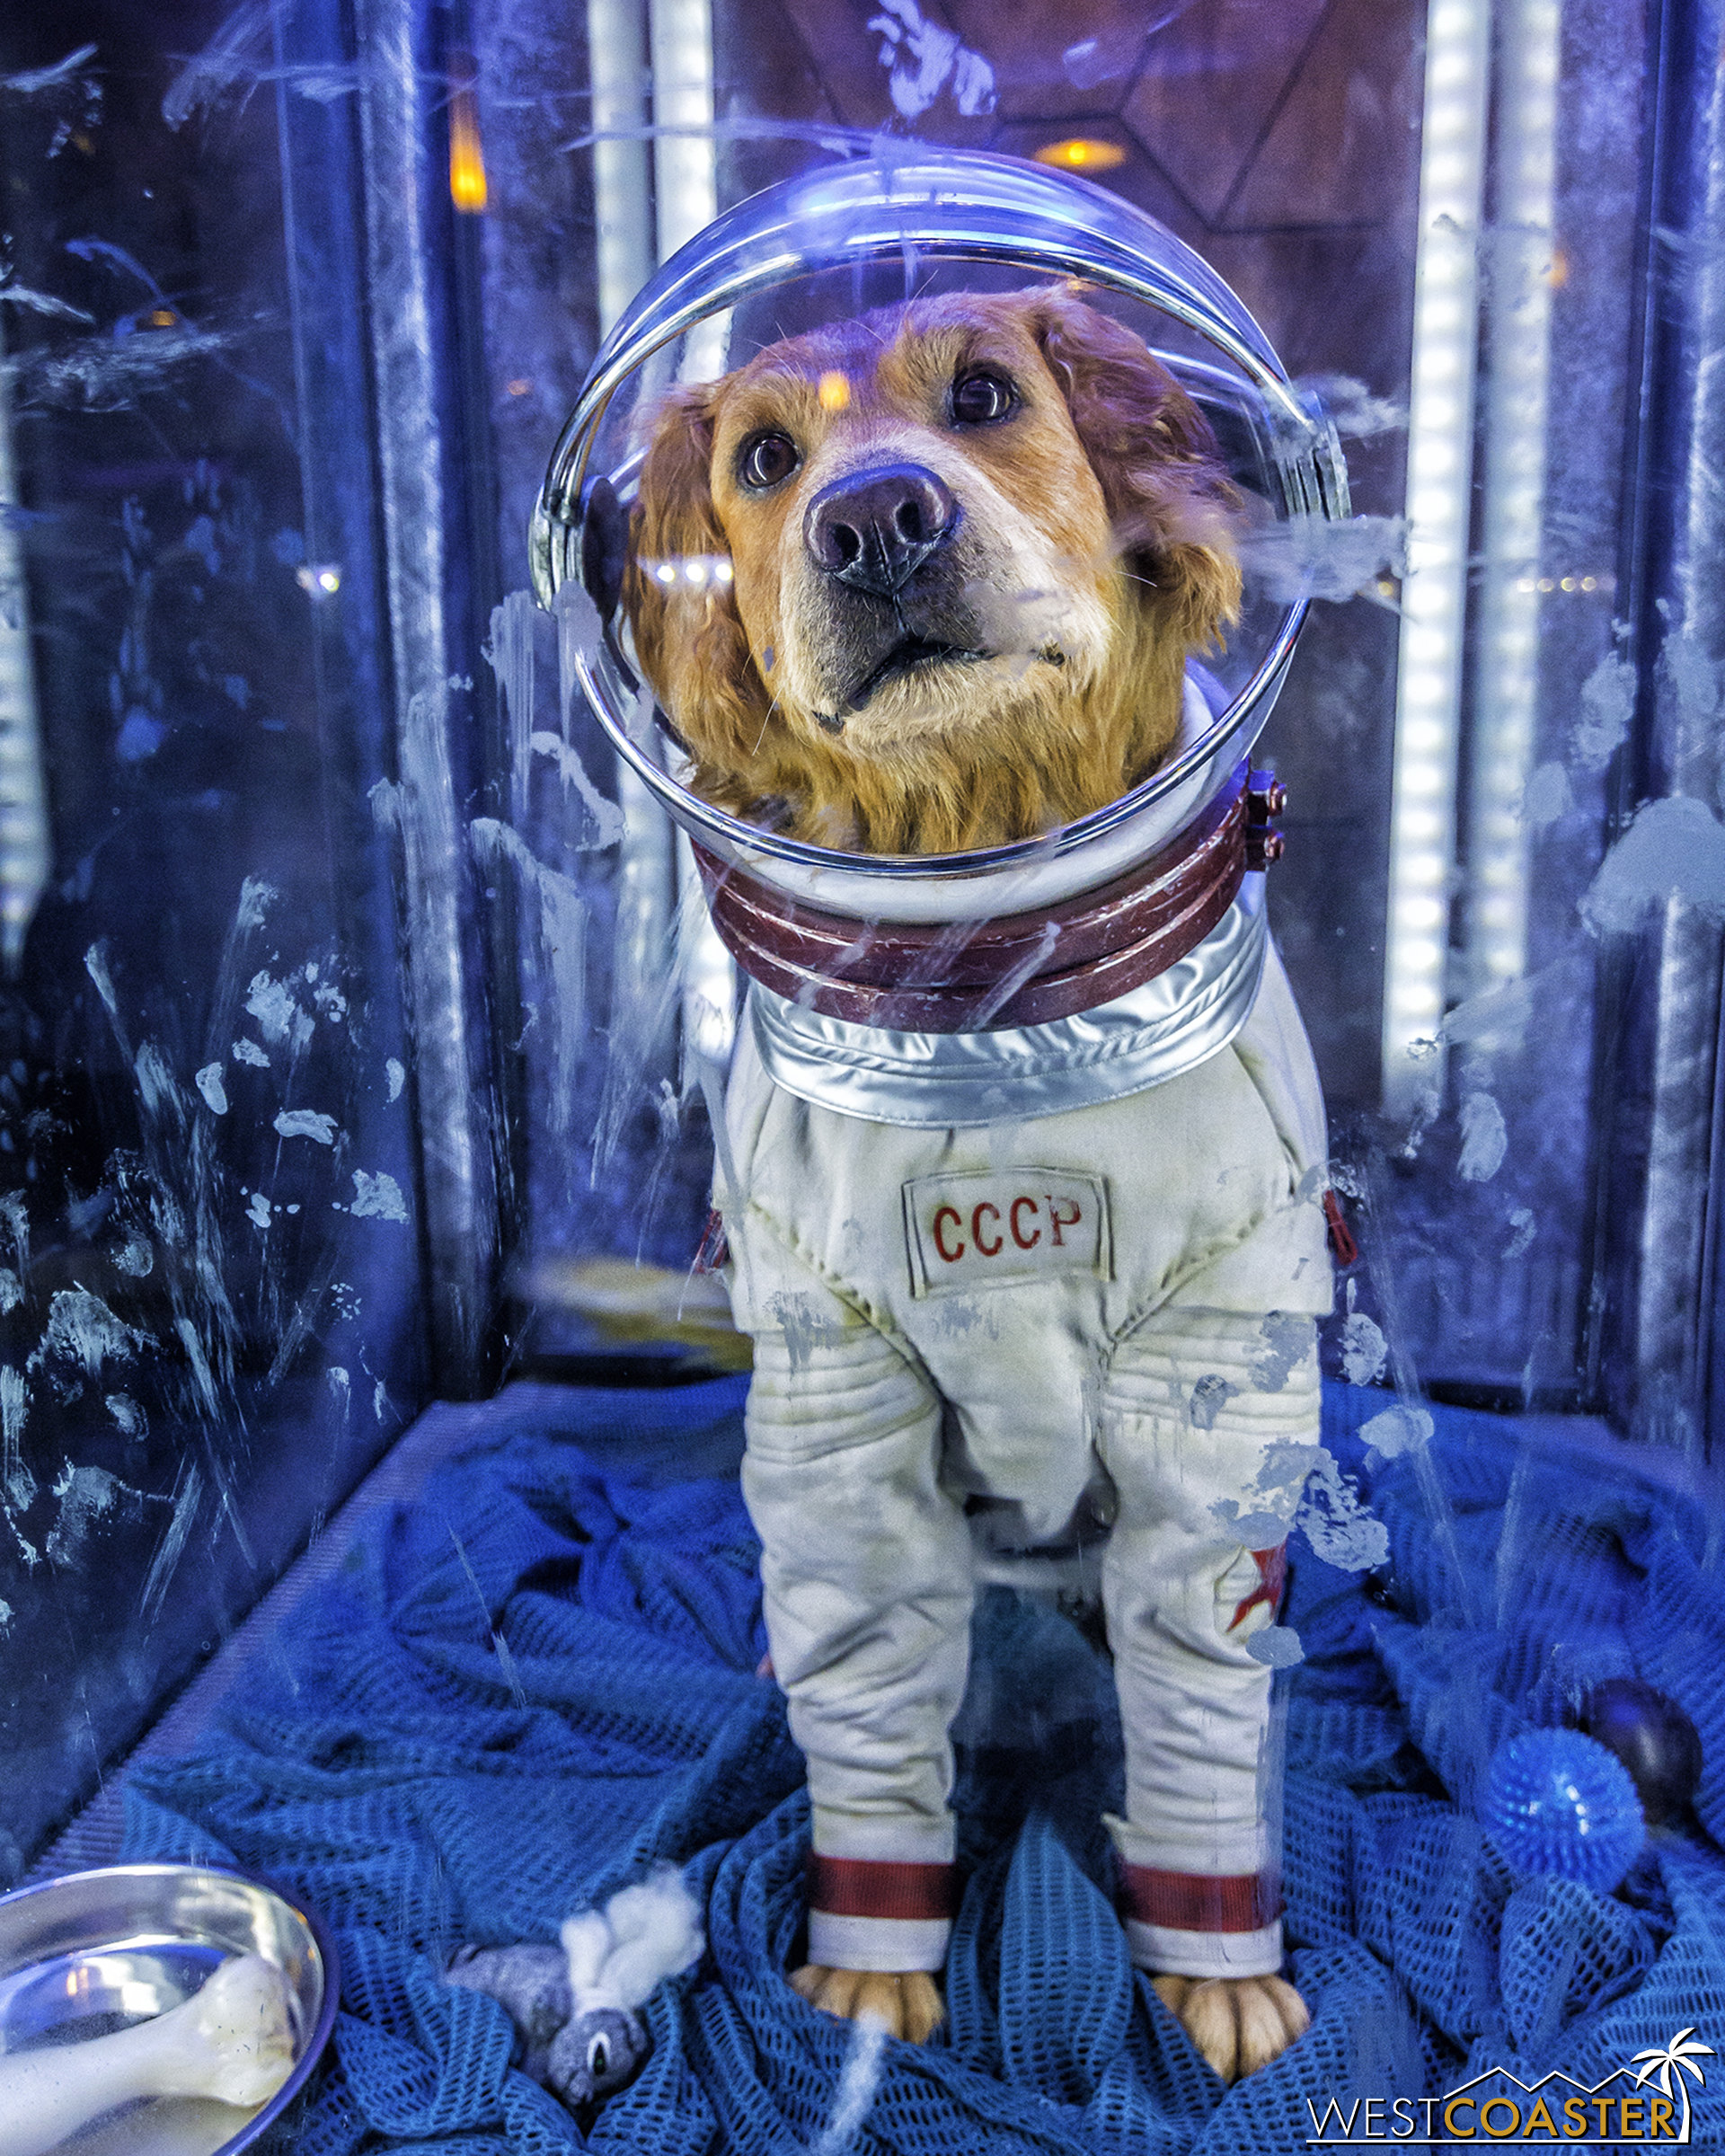 And Cosmo the Dog, who himself is an easter egg in the movies.  (Photo courtesy of Brandon Joseph of   DizFeed  .)